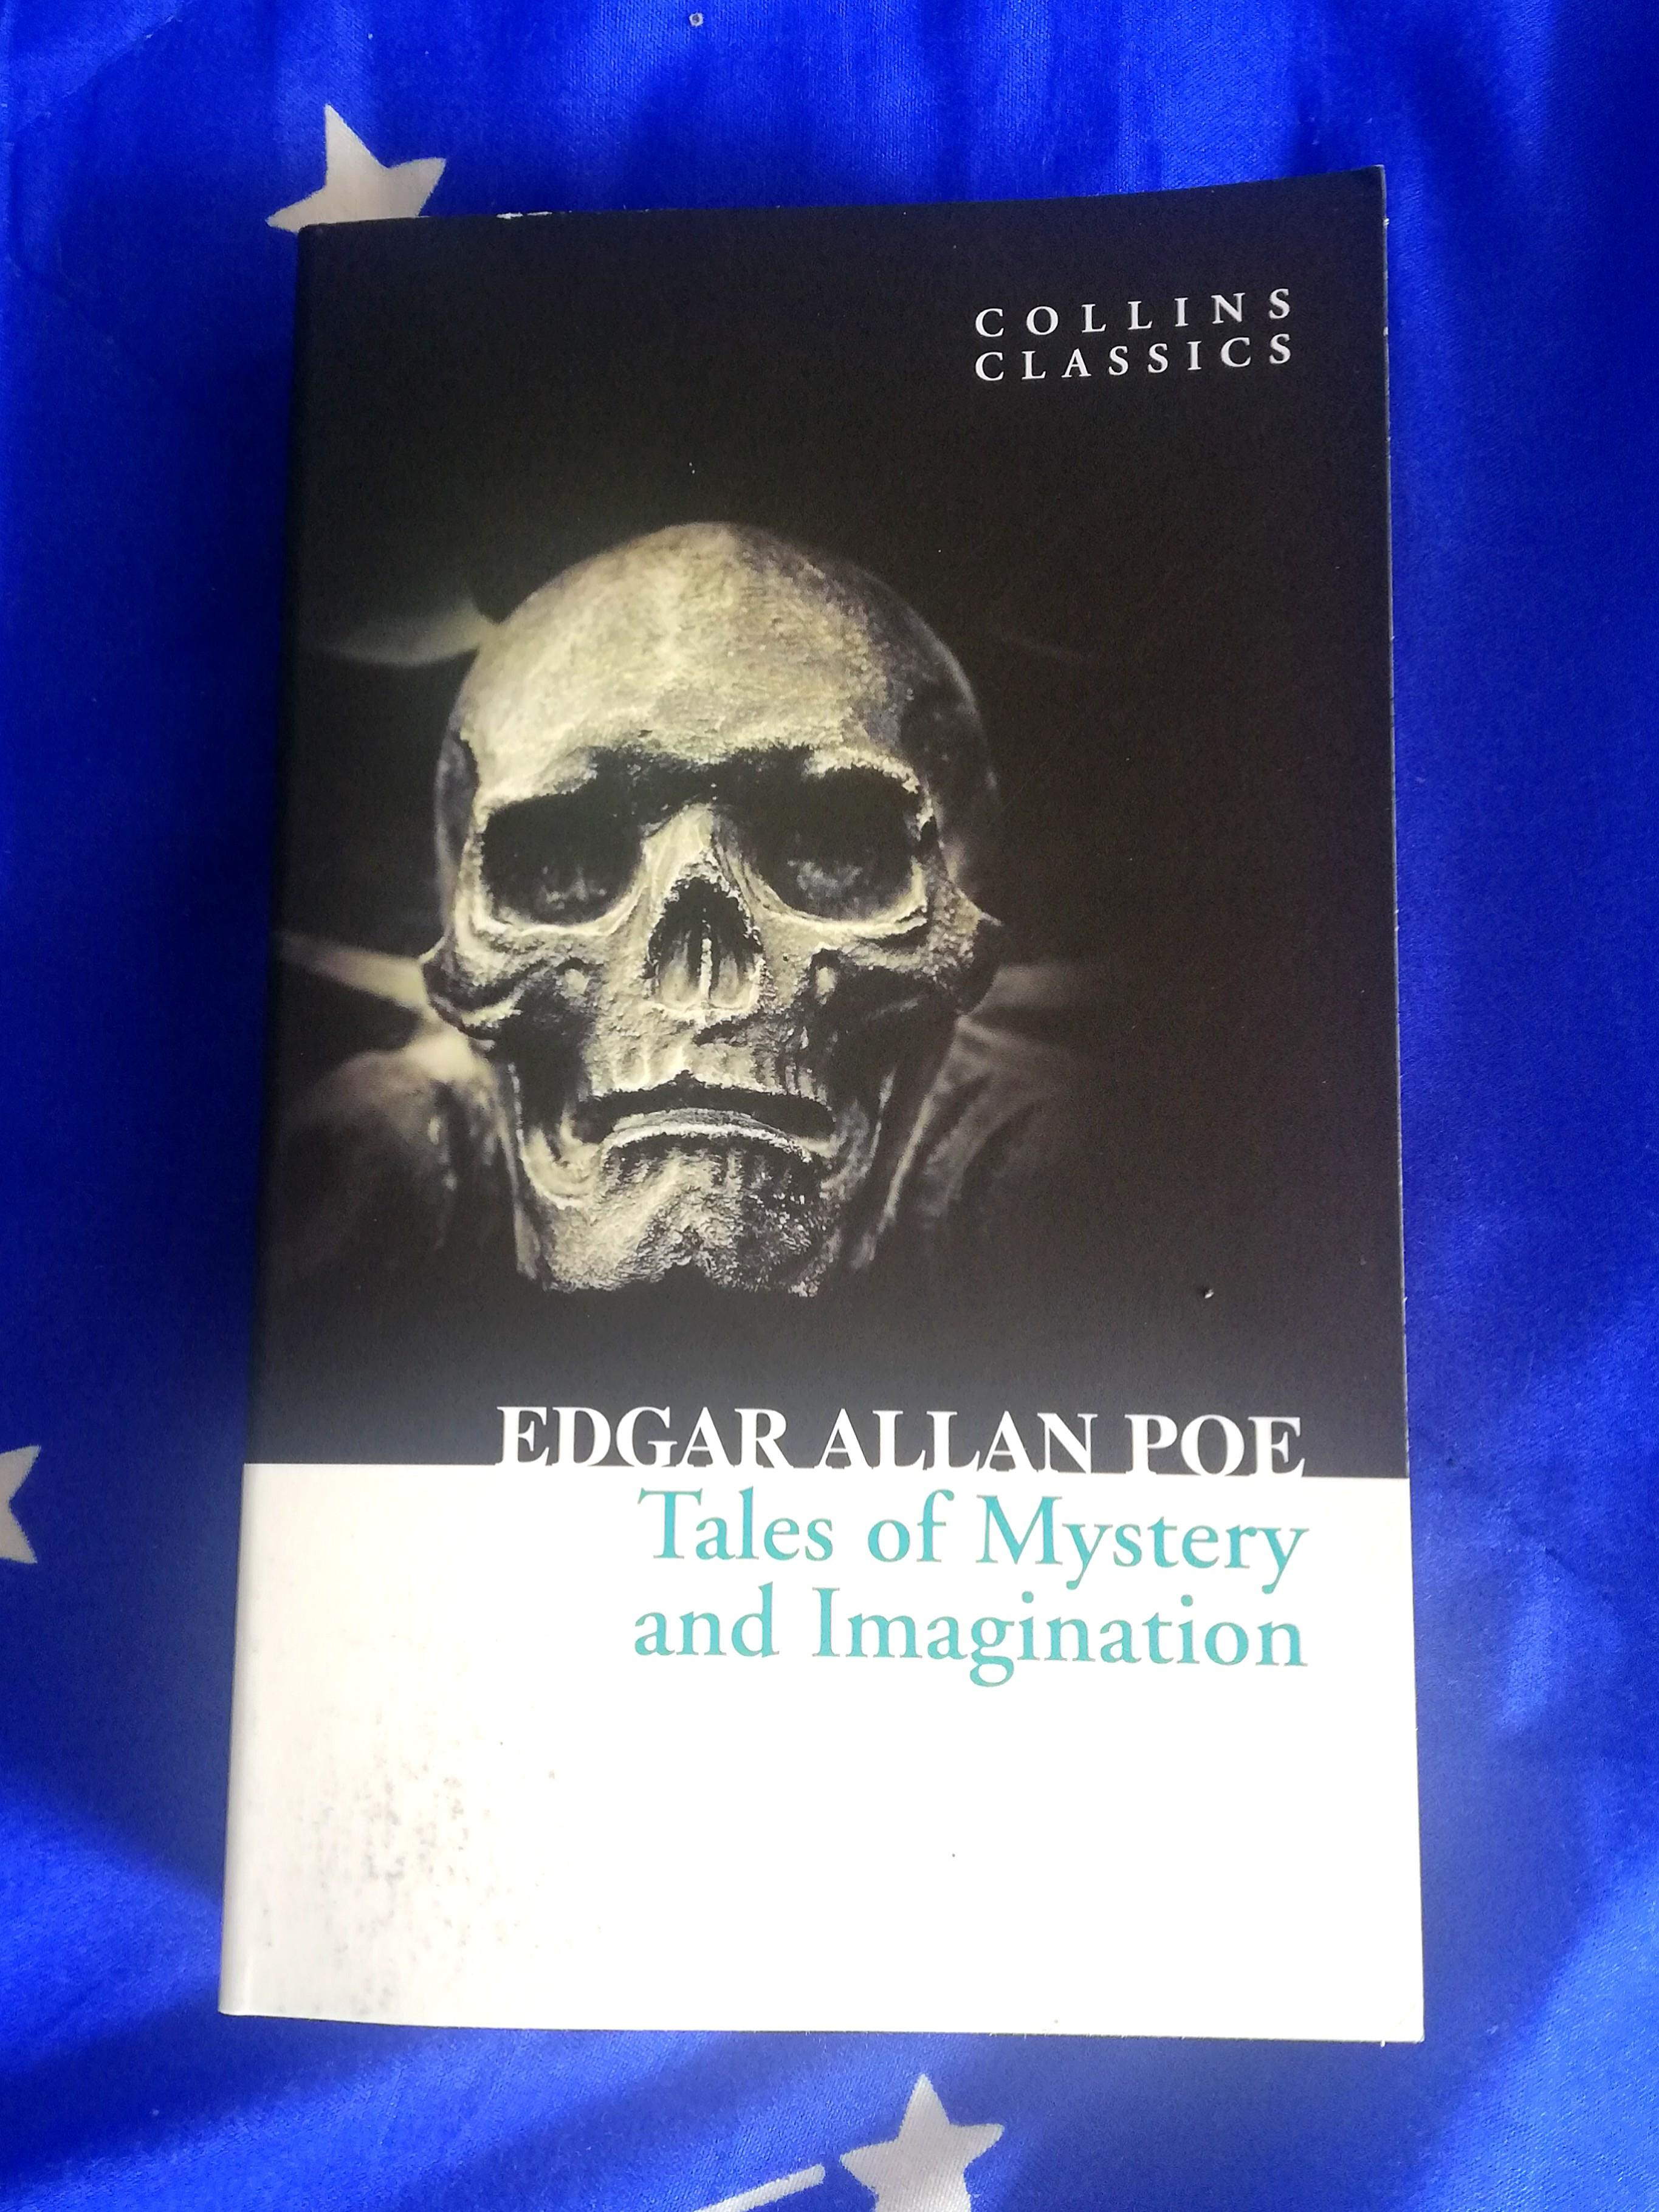 (Negotiable!!) Tales of Mystery and Imagination by Edgar Allan Poe - Collins Classic